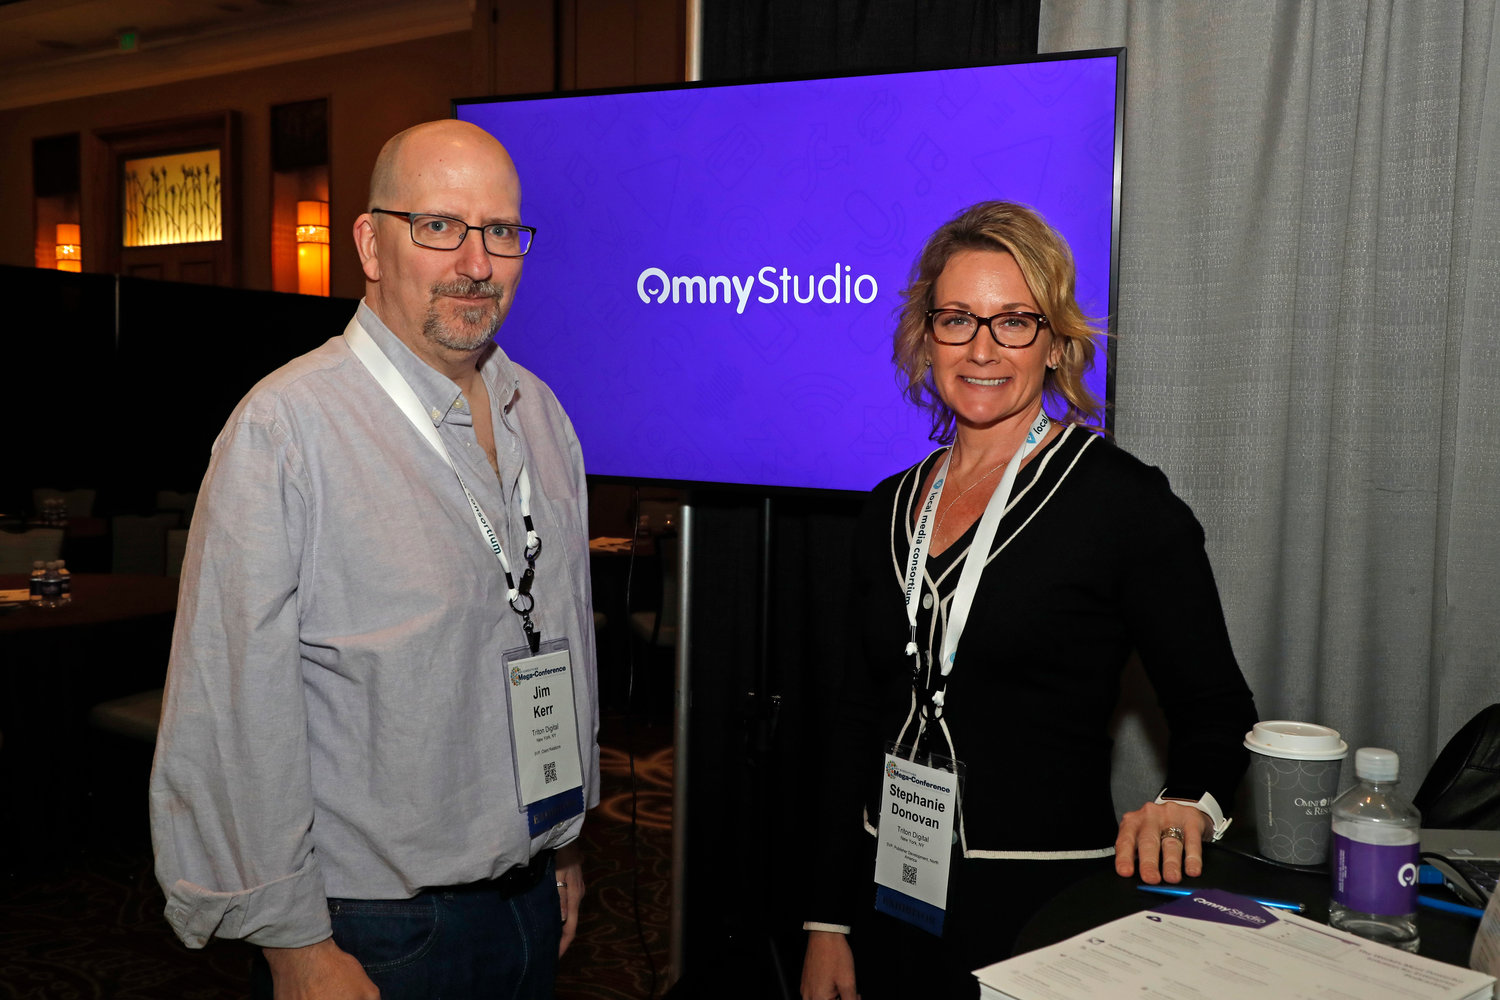 Monday photos of the 2020 Mega-Conference at the Omni Hotel in Fort Worth, Texas, Feb. 17, 2020. (Photo by Bob Booth)